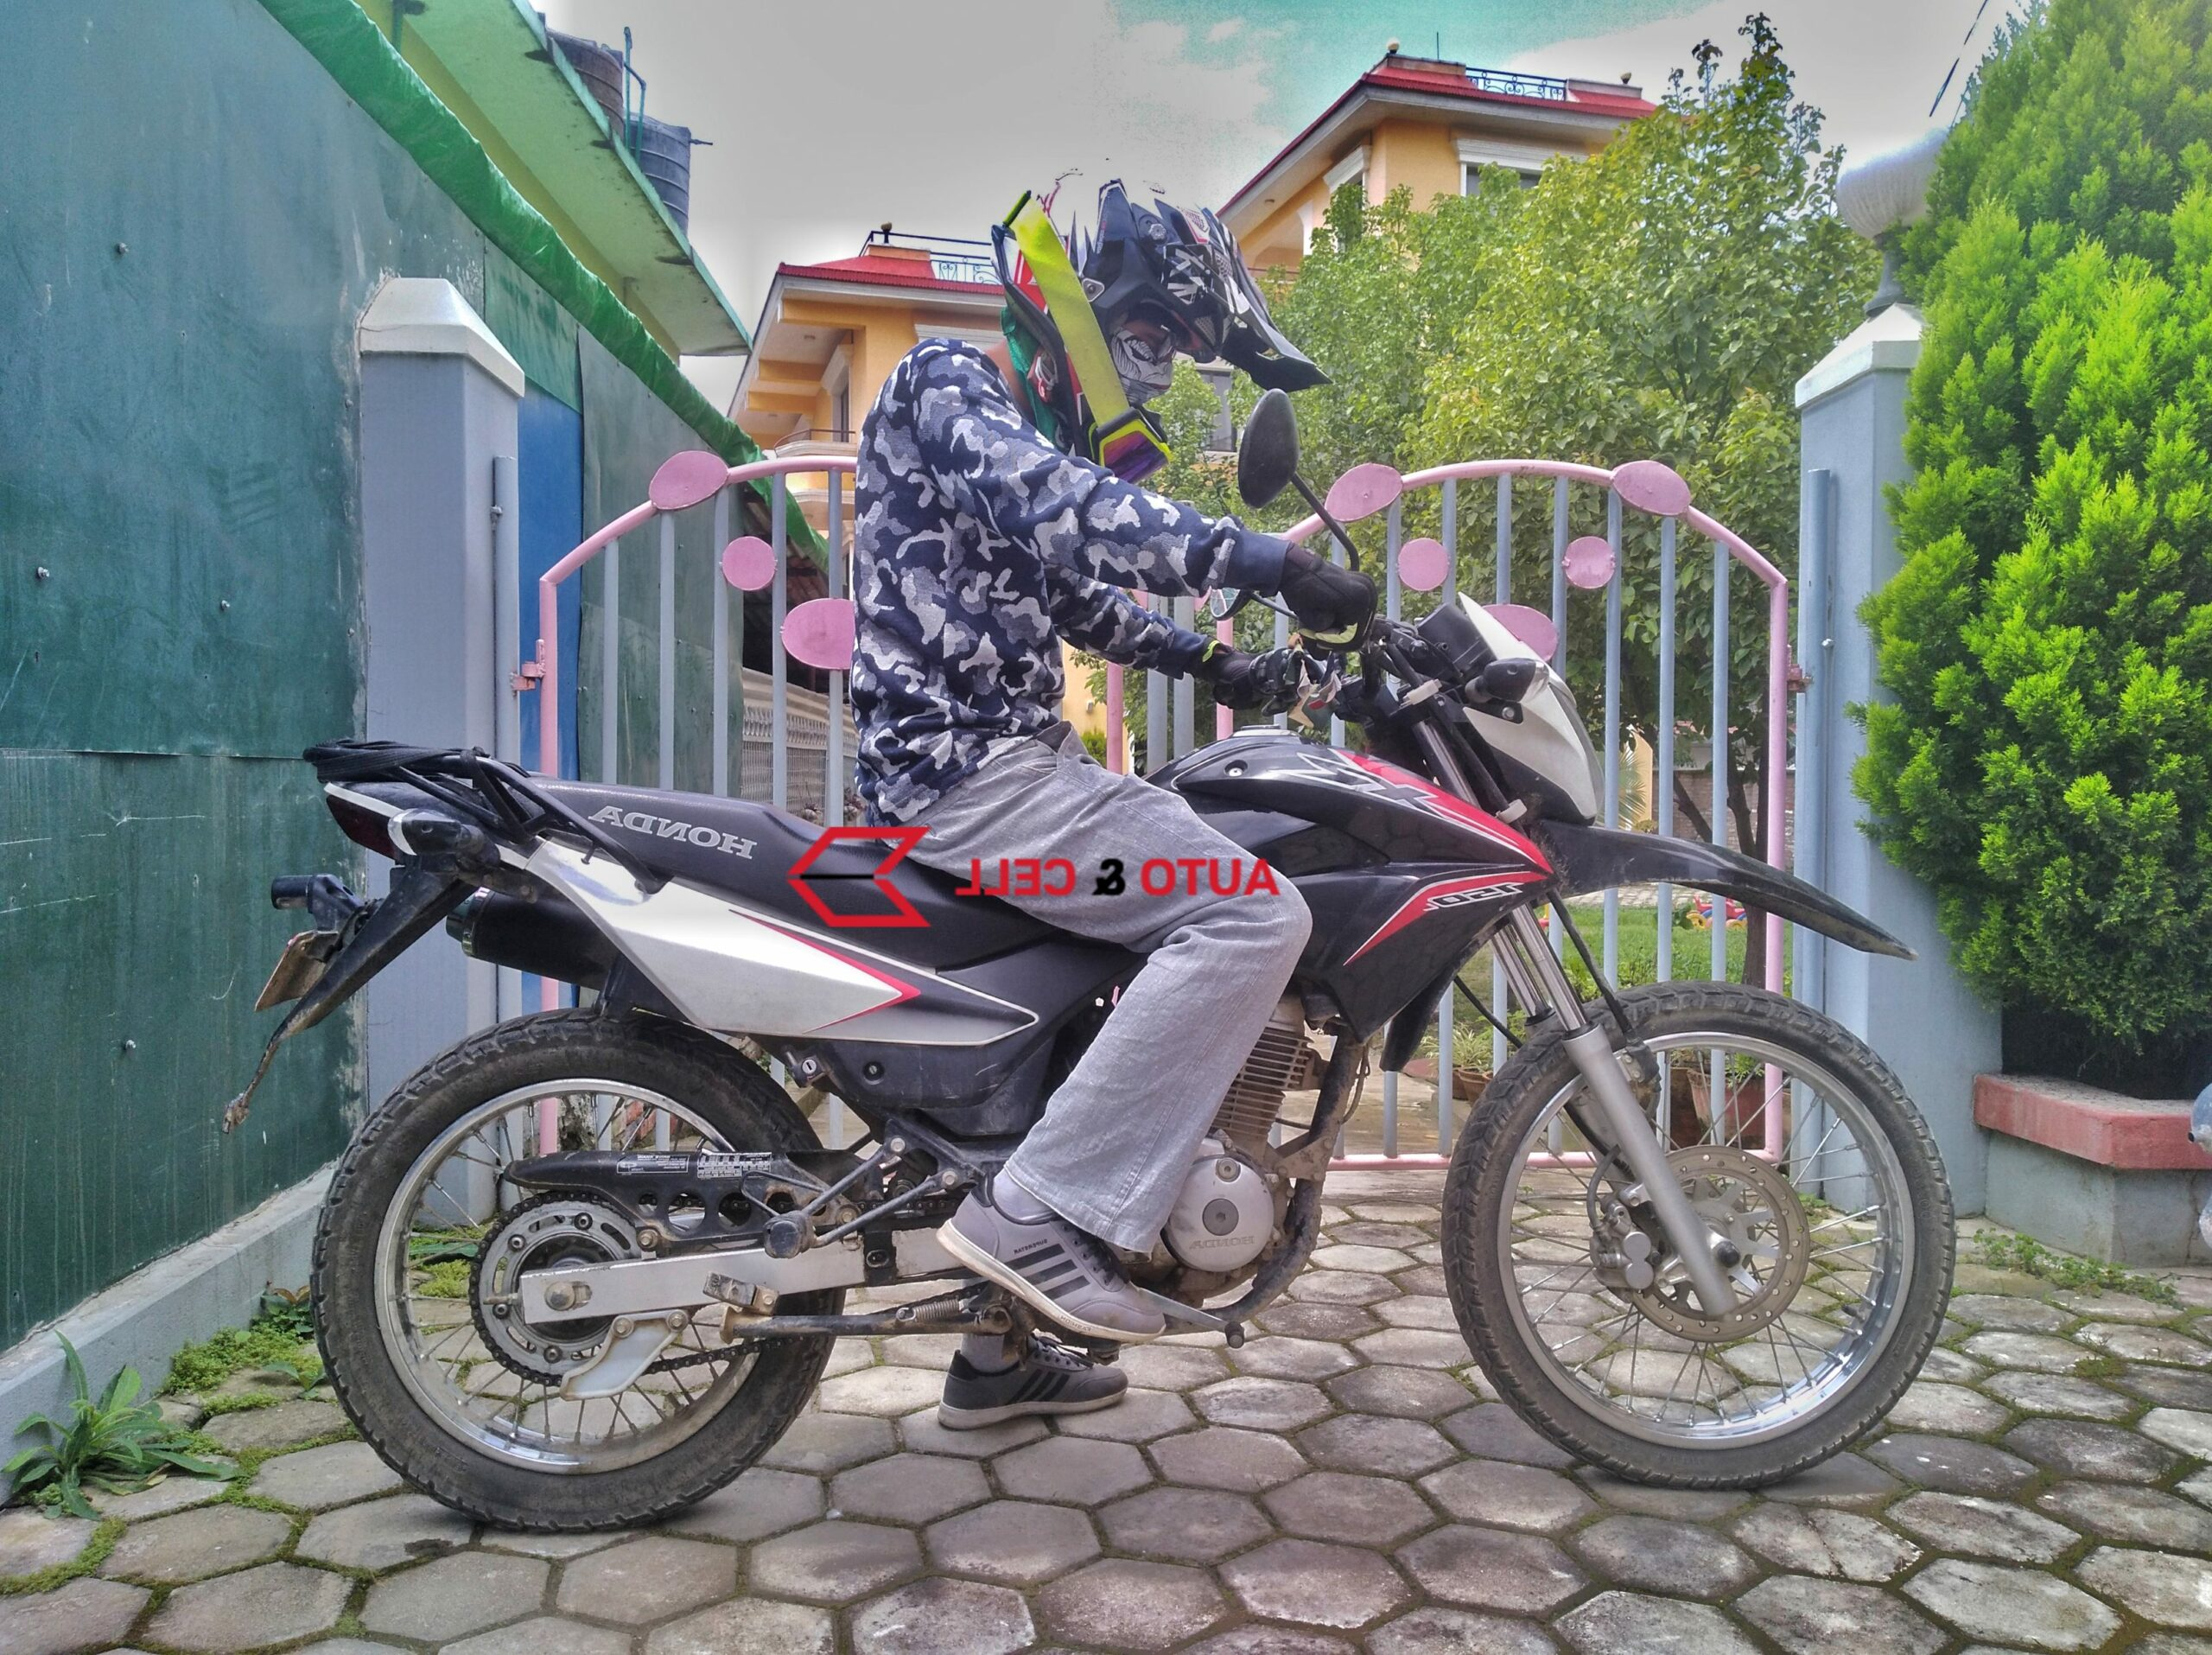 honda xr 150 price in nepal 2020  Specs and Review